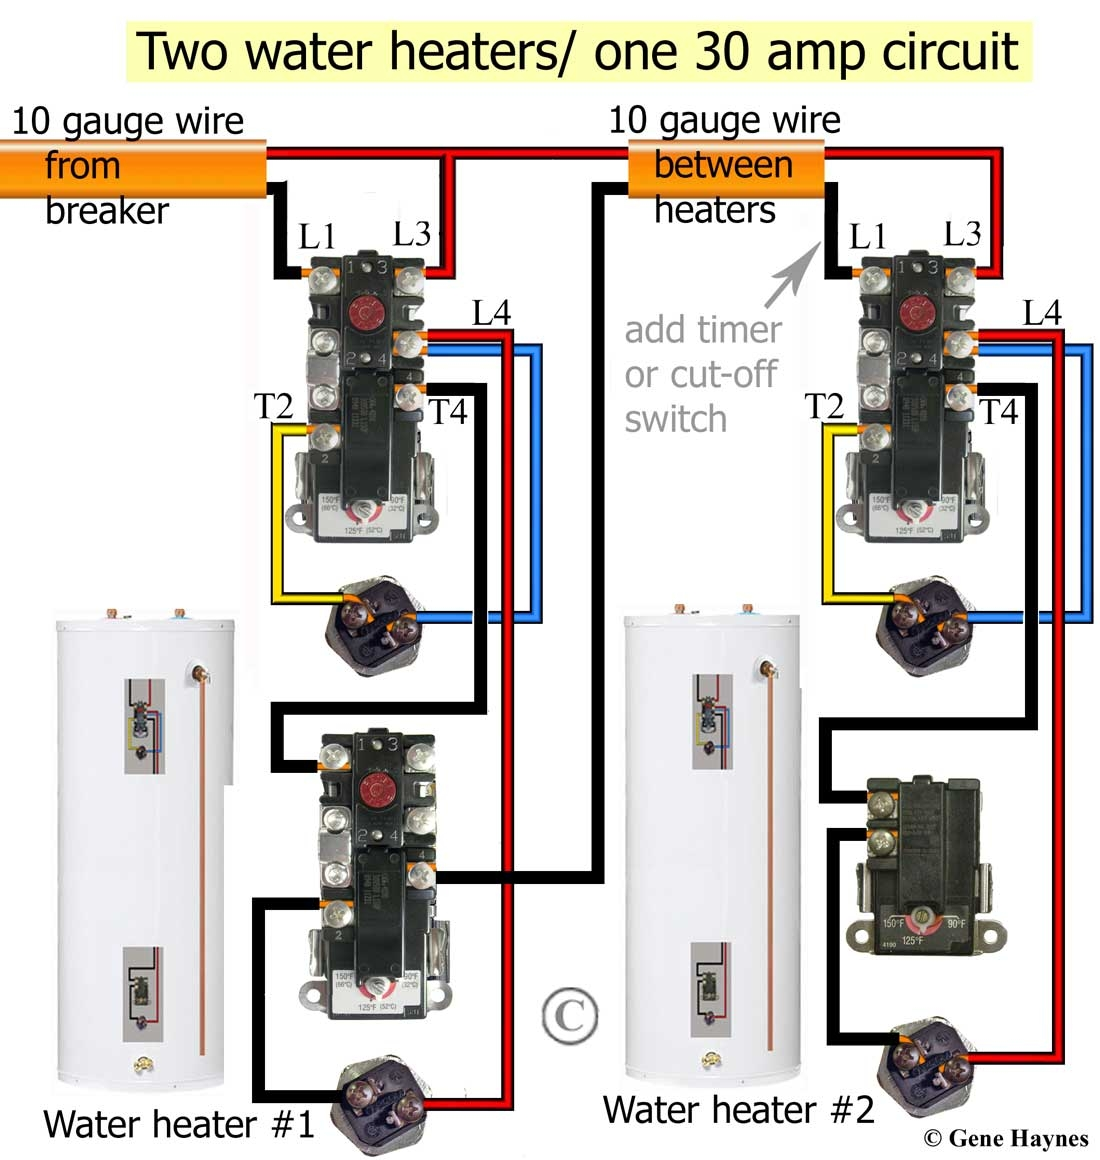 rheem water heater wiring diagram dual element series speaker crossover ao smith thermostat free